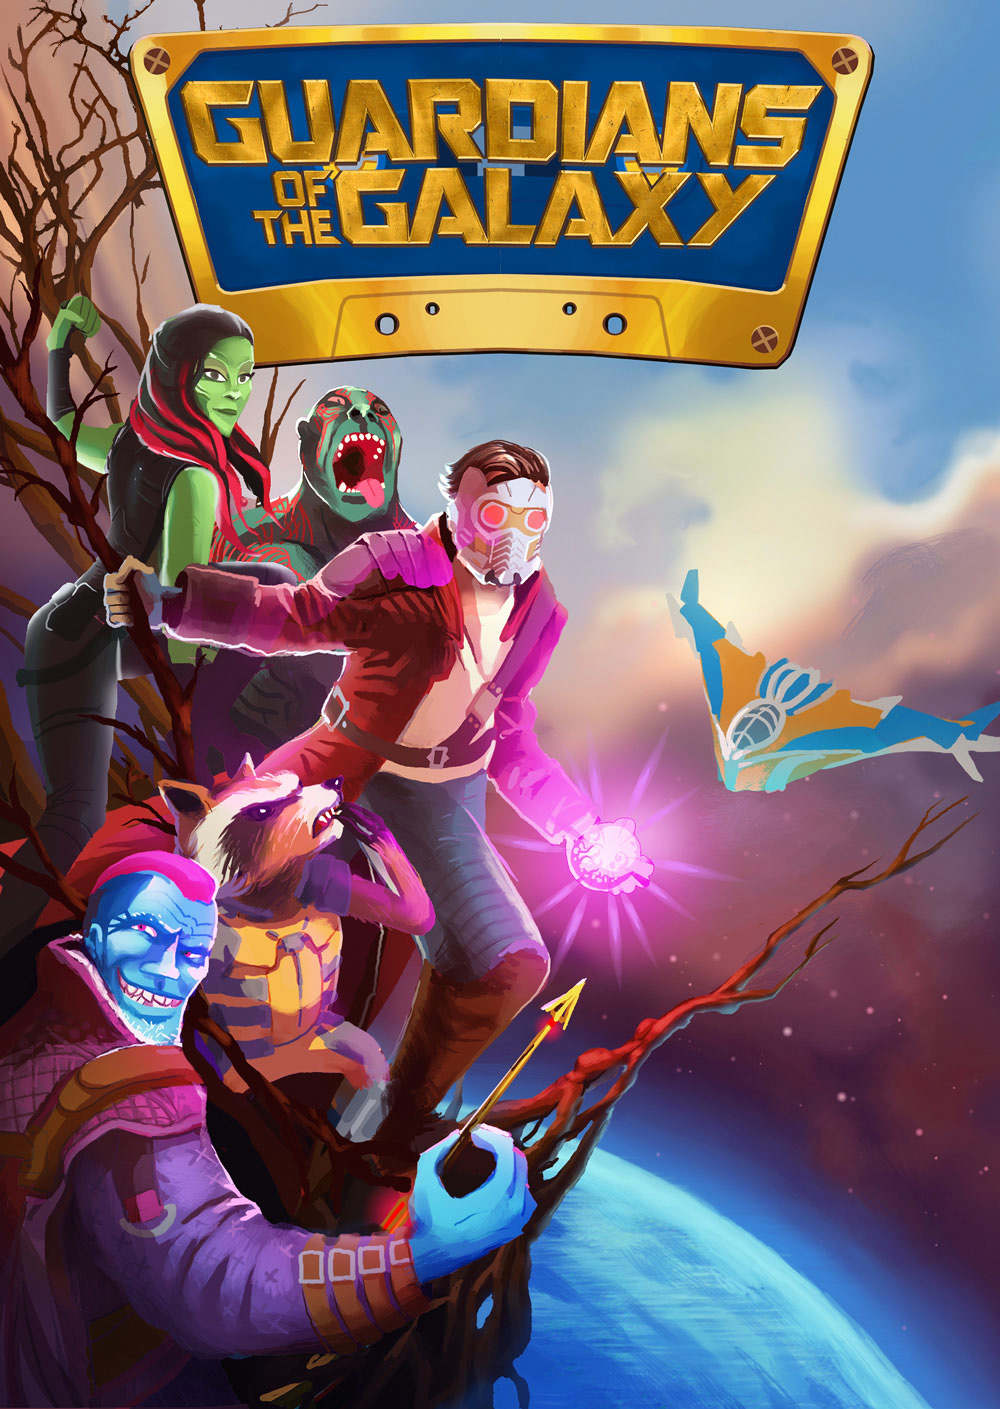 Guardians of the Treasure Planet by Art-Calavera on DeviantArt